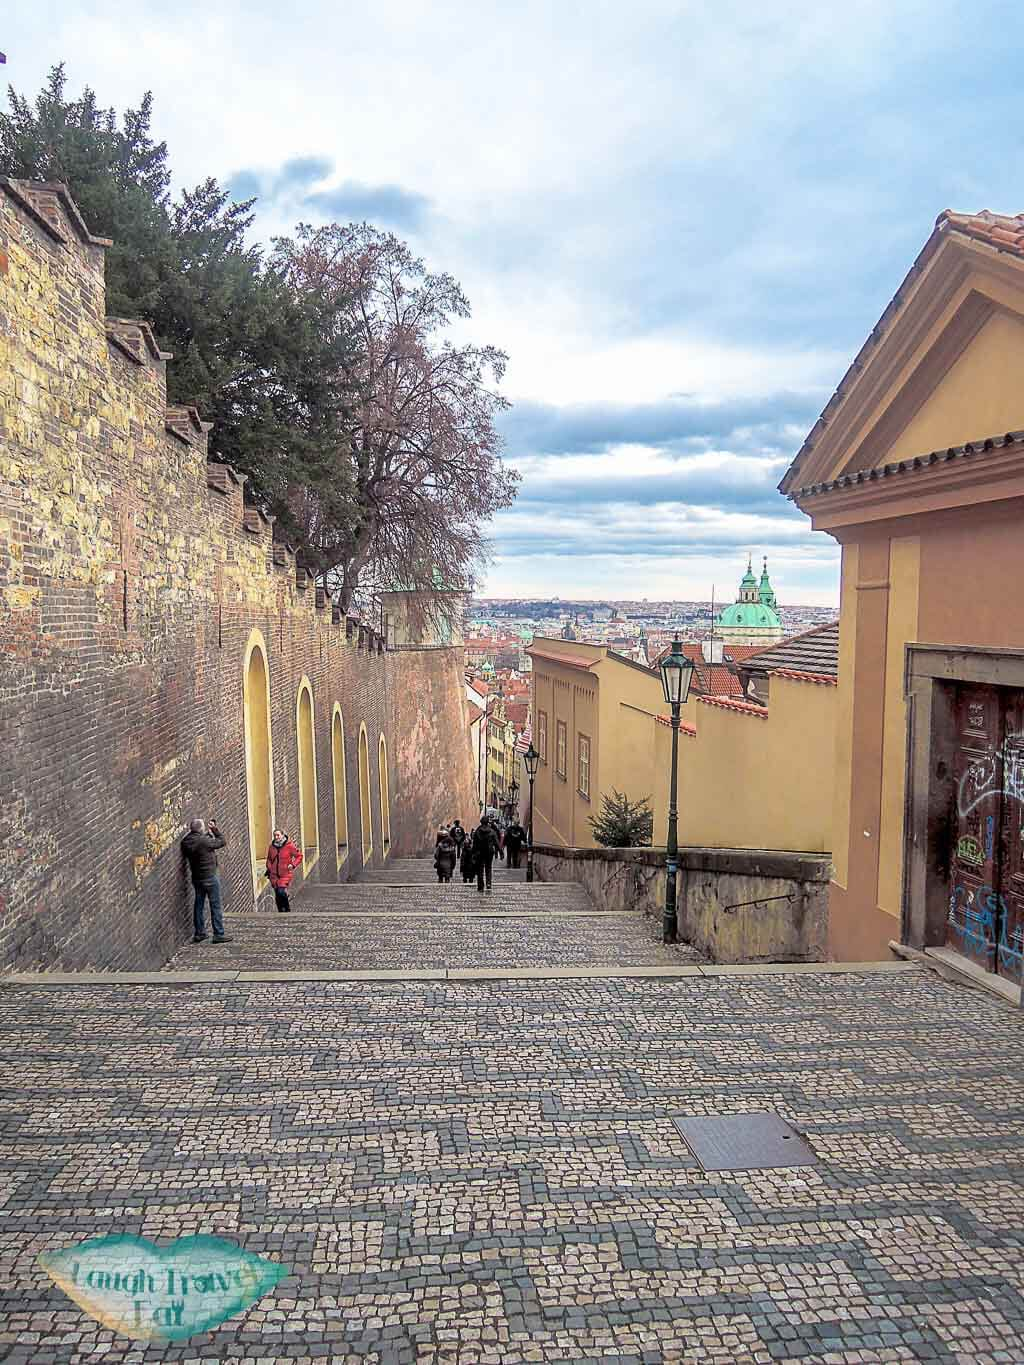 Zamecke schody - a patterned cobble stone steps that leads you back down. Prague, Czech Republic - Laugh Travel Eat